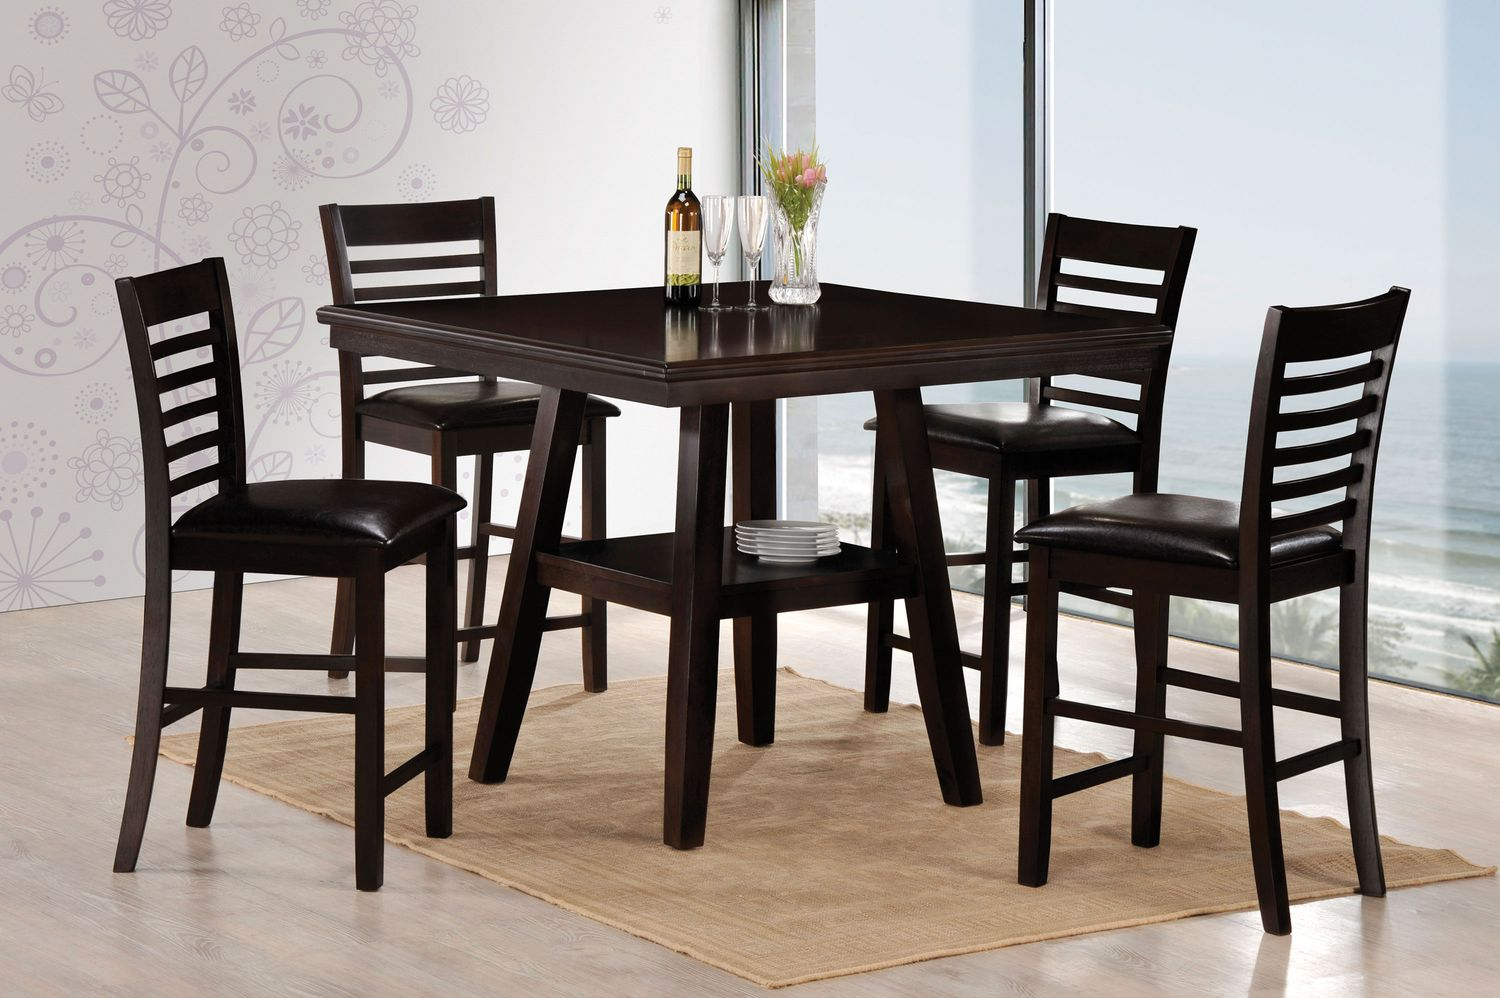 Everwood counter height table levin furniture for Dining room furniture 0 finance